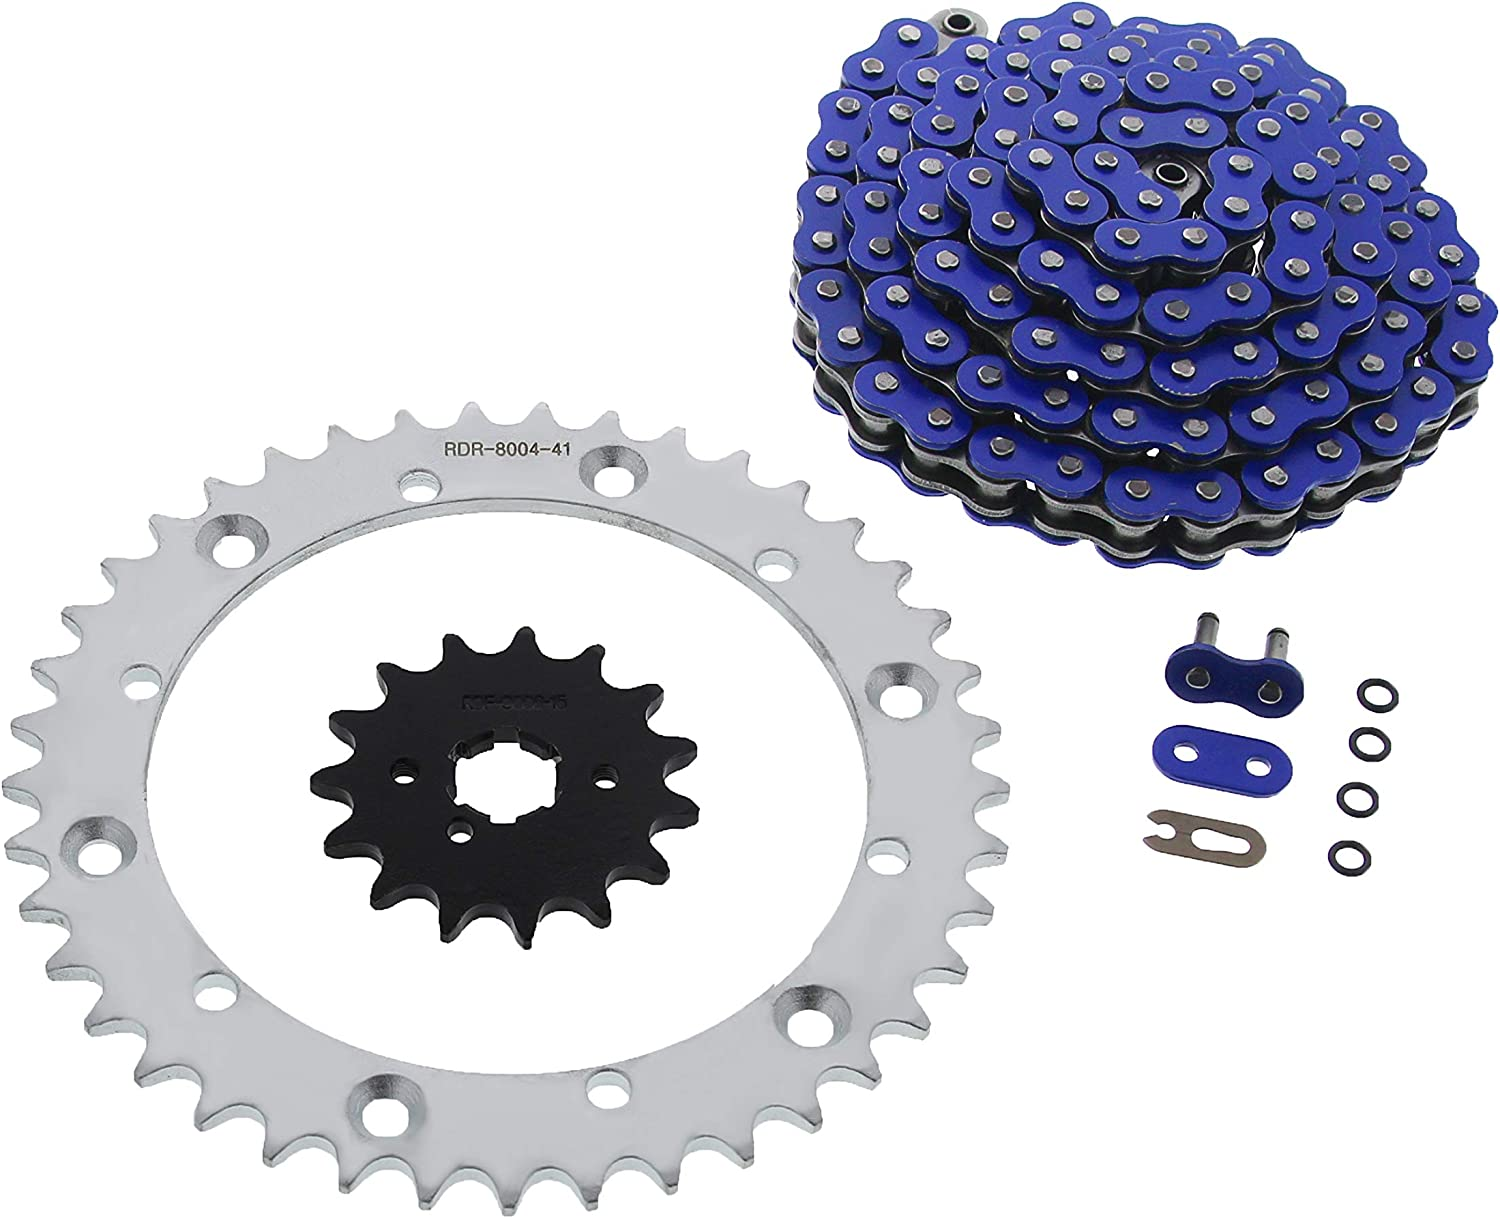 Blue O-Ring Chain /& Silver Sprocket 15//41 102L fits 2001-2004 fits Yamaha 350 Warrior